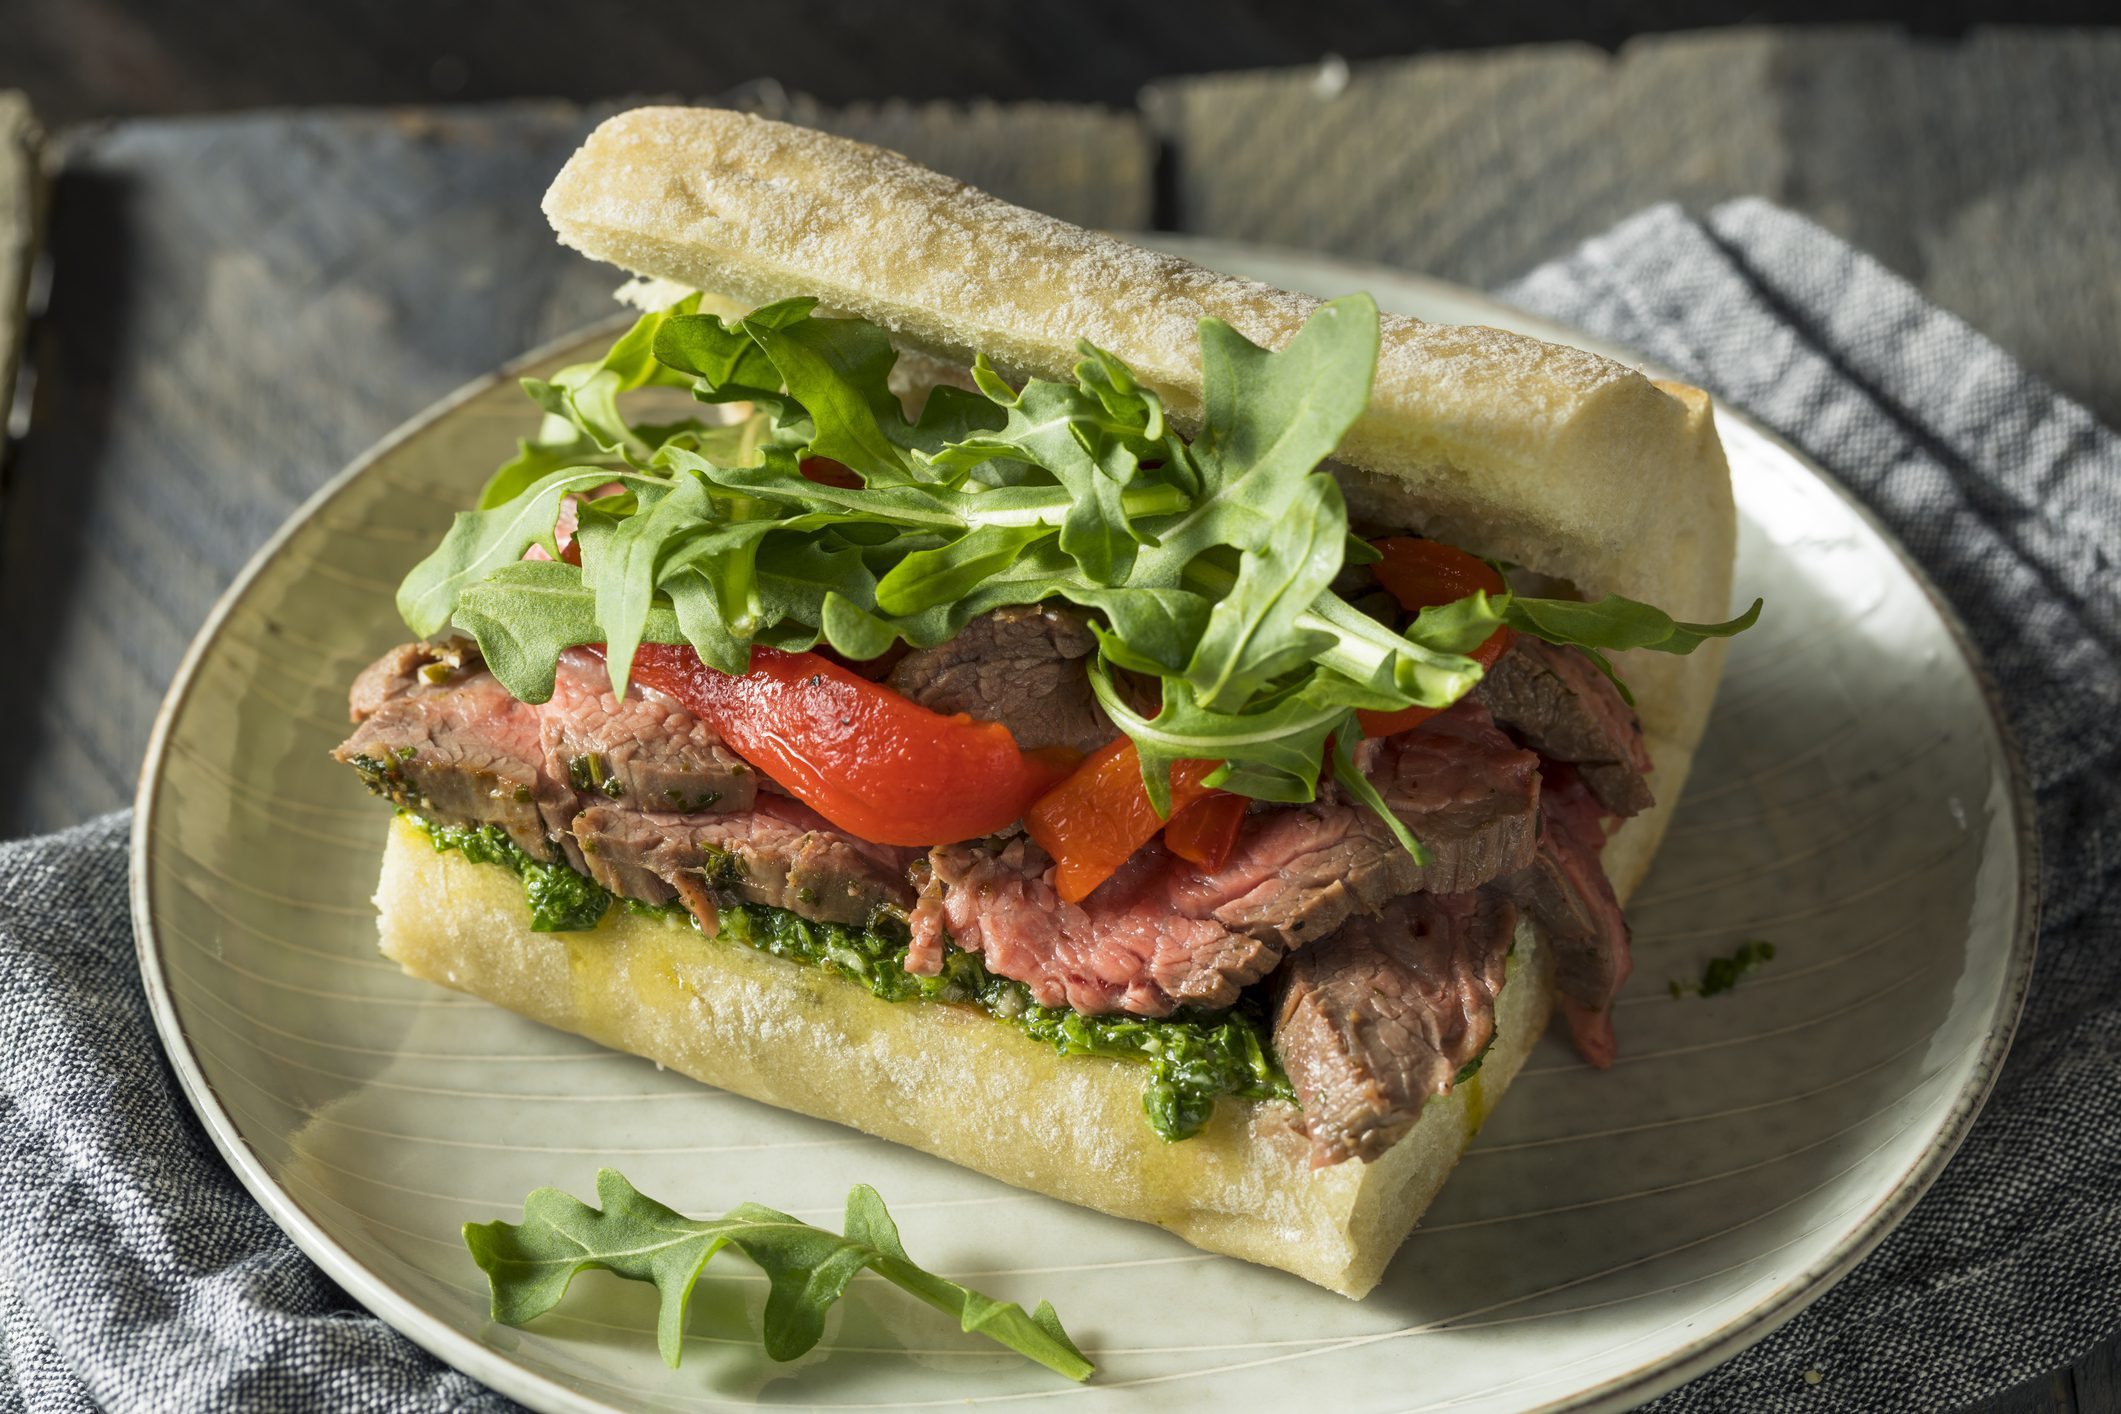 addison clermont Chimichurri steak sandwich - The Addison at Clermont